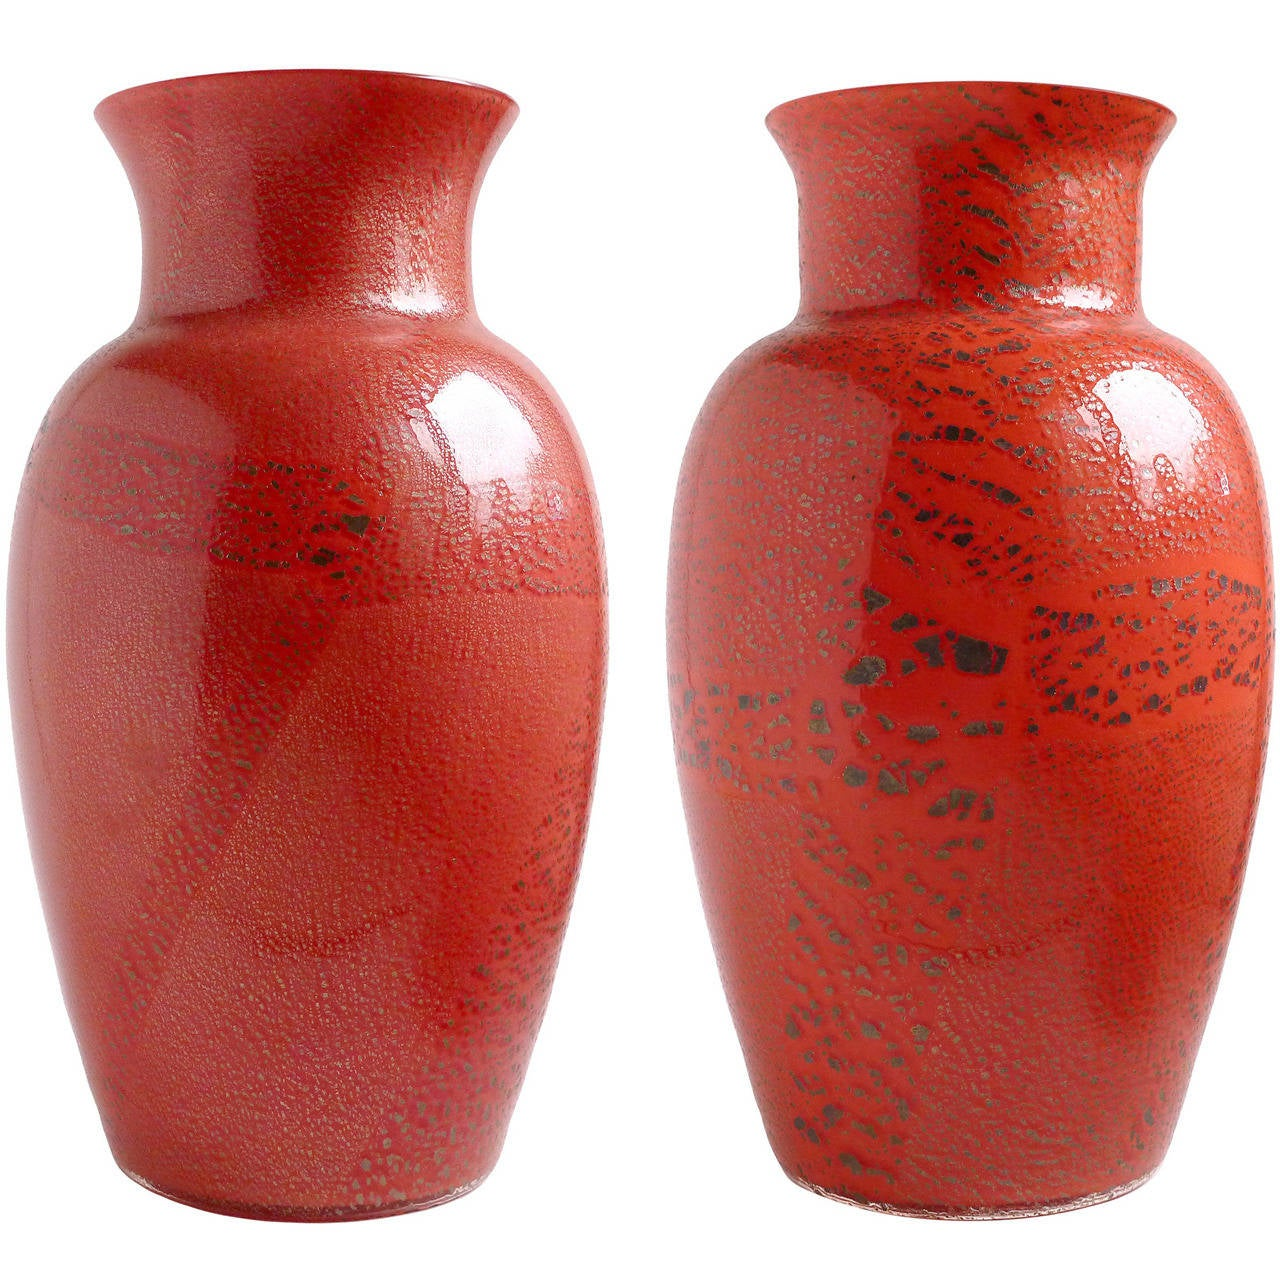 2 awesome large red vase home idea murano red applied heavy silver leaf italian art reviewsmspy